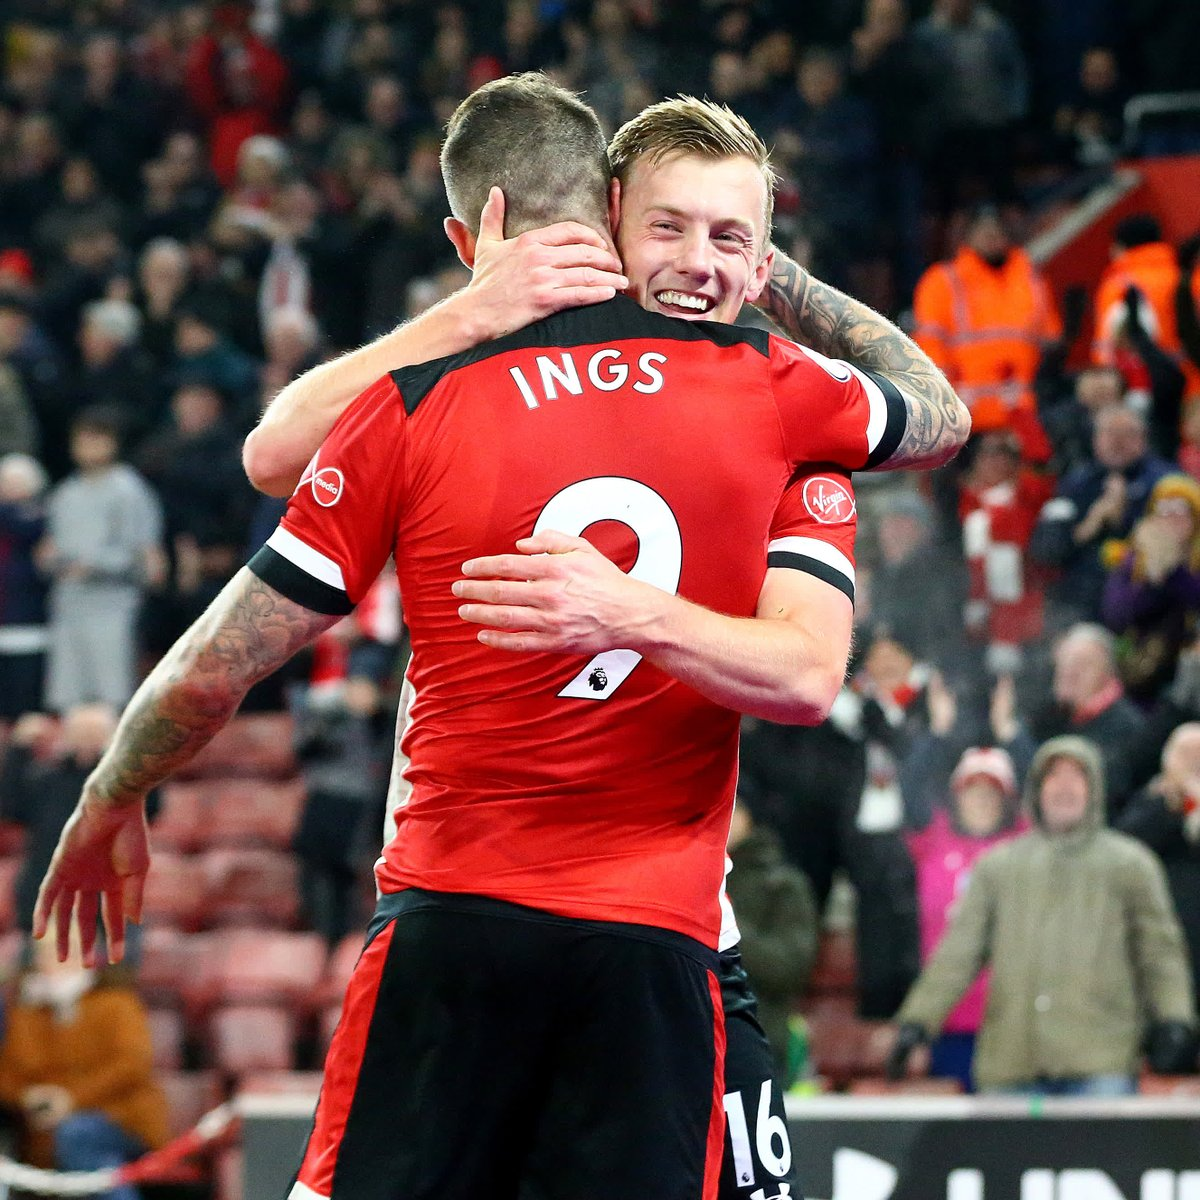 #OnThisDay In 2019 - We beat Norwich 2-1 to move out of the Premier League relegation zone! #SaintFC